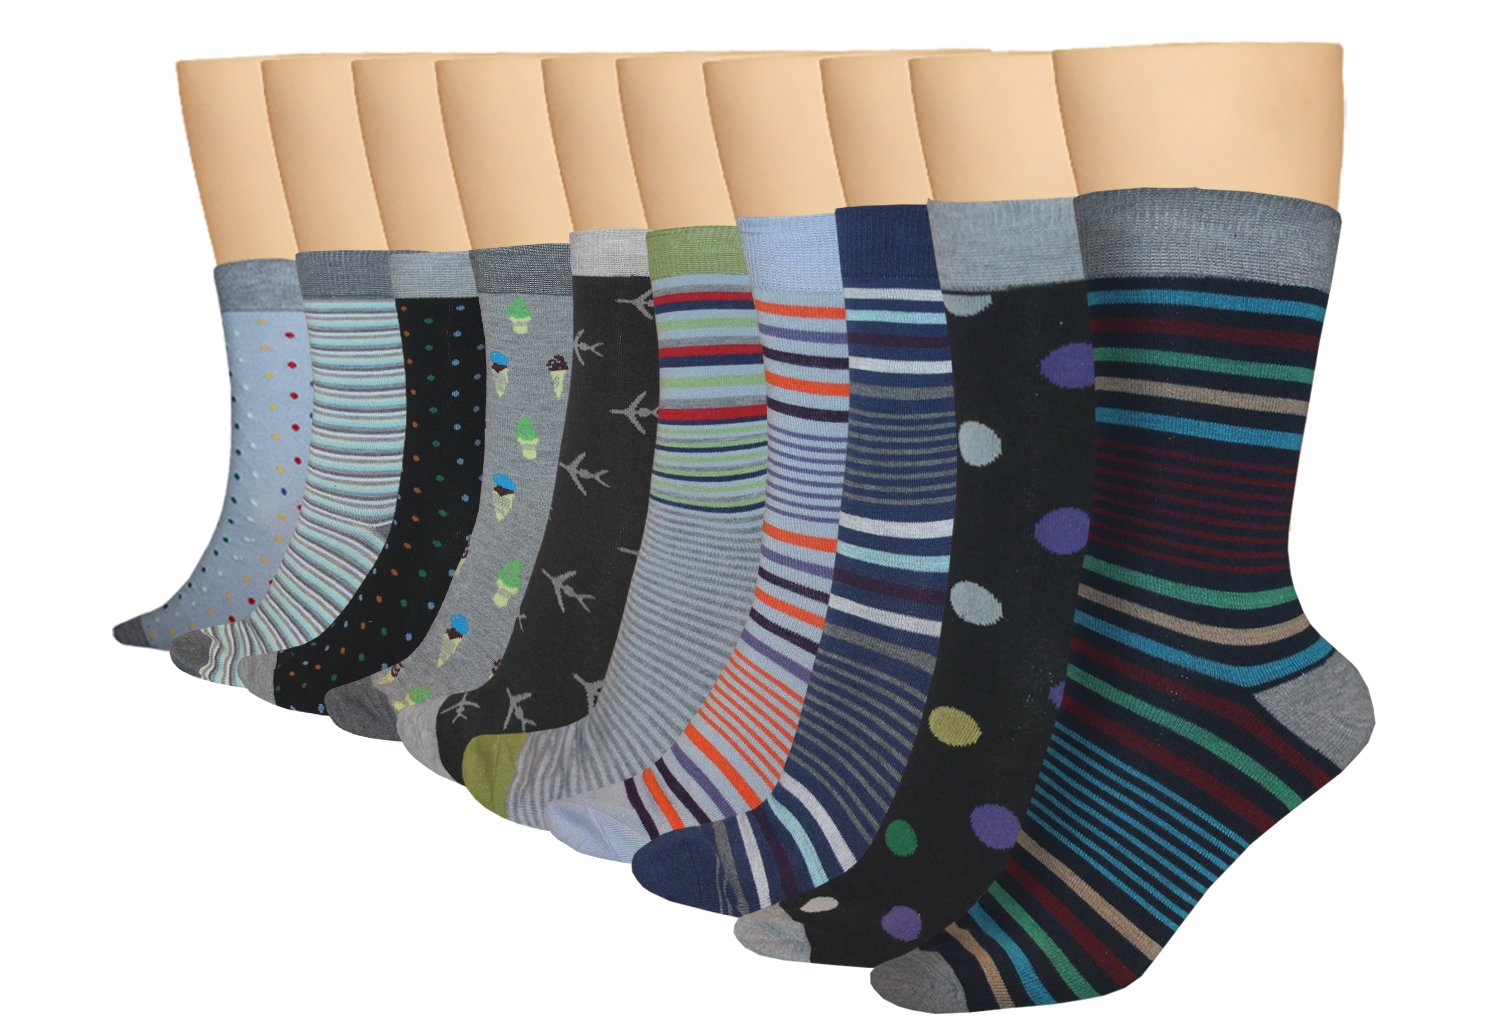 3KB Men's Dress Socks Strong Collection (10 Pairs Per Pack) Shoe Sizes 7 to 11 - Variety of Patterns